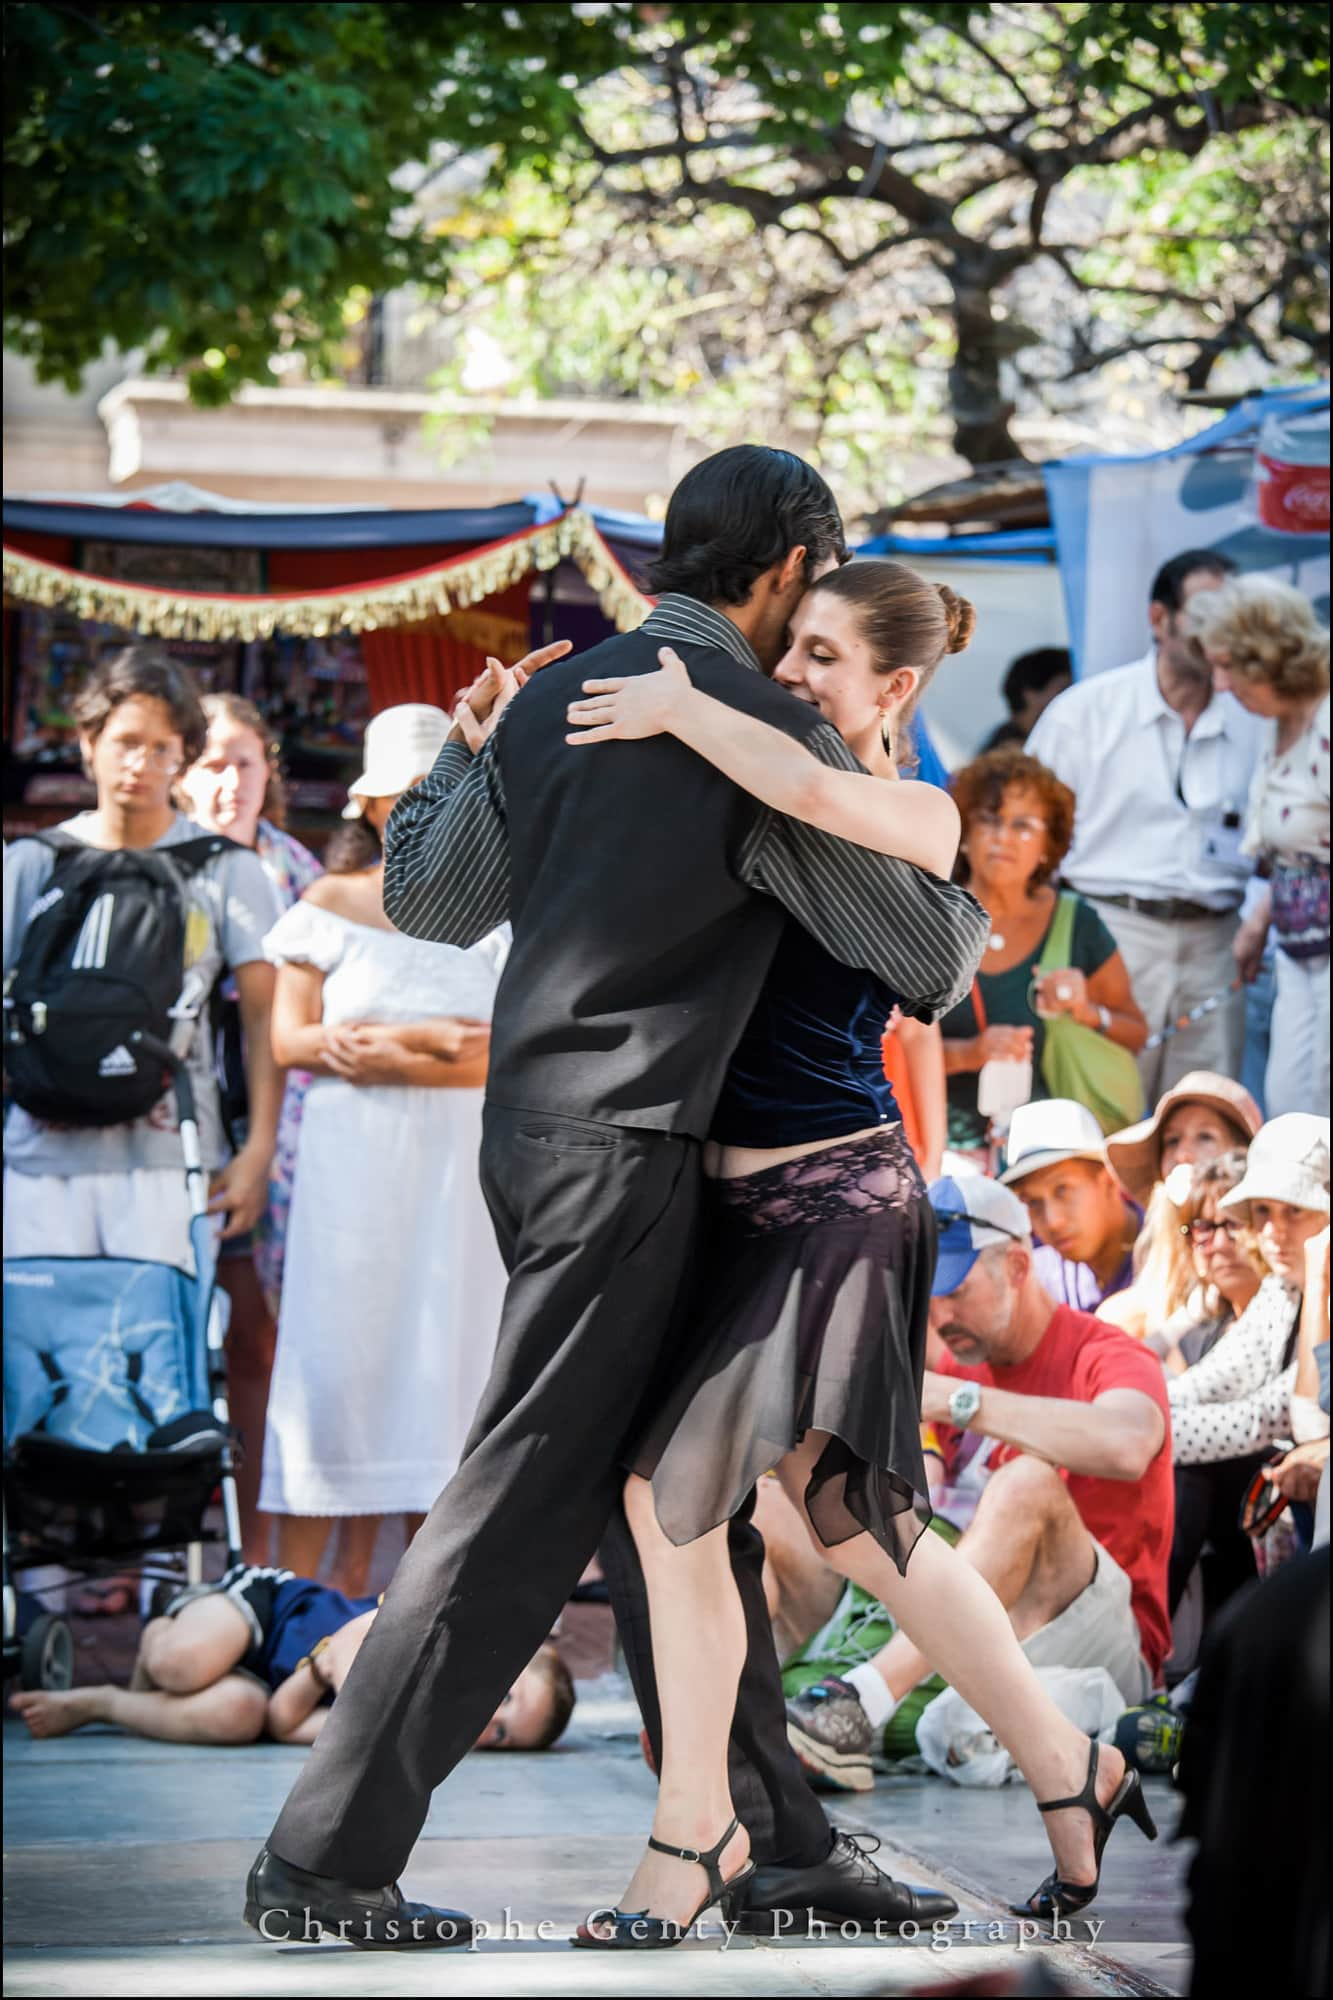 Tango Dancers in  San Telmo district - Buenos Aires, Argentina - December 2015